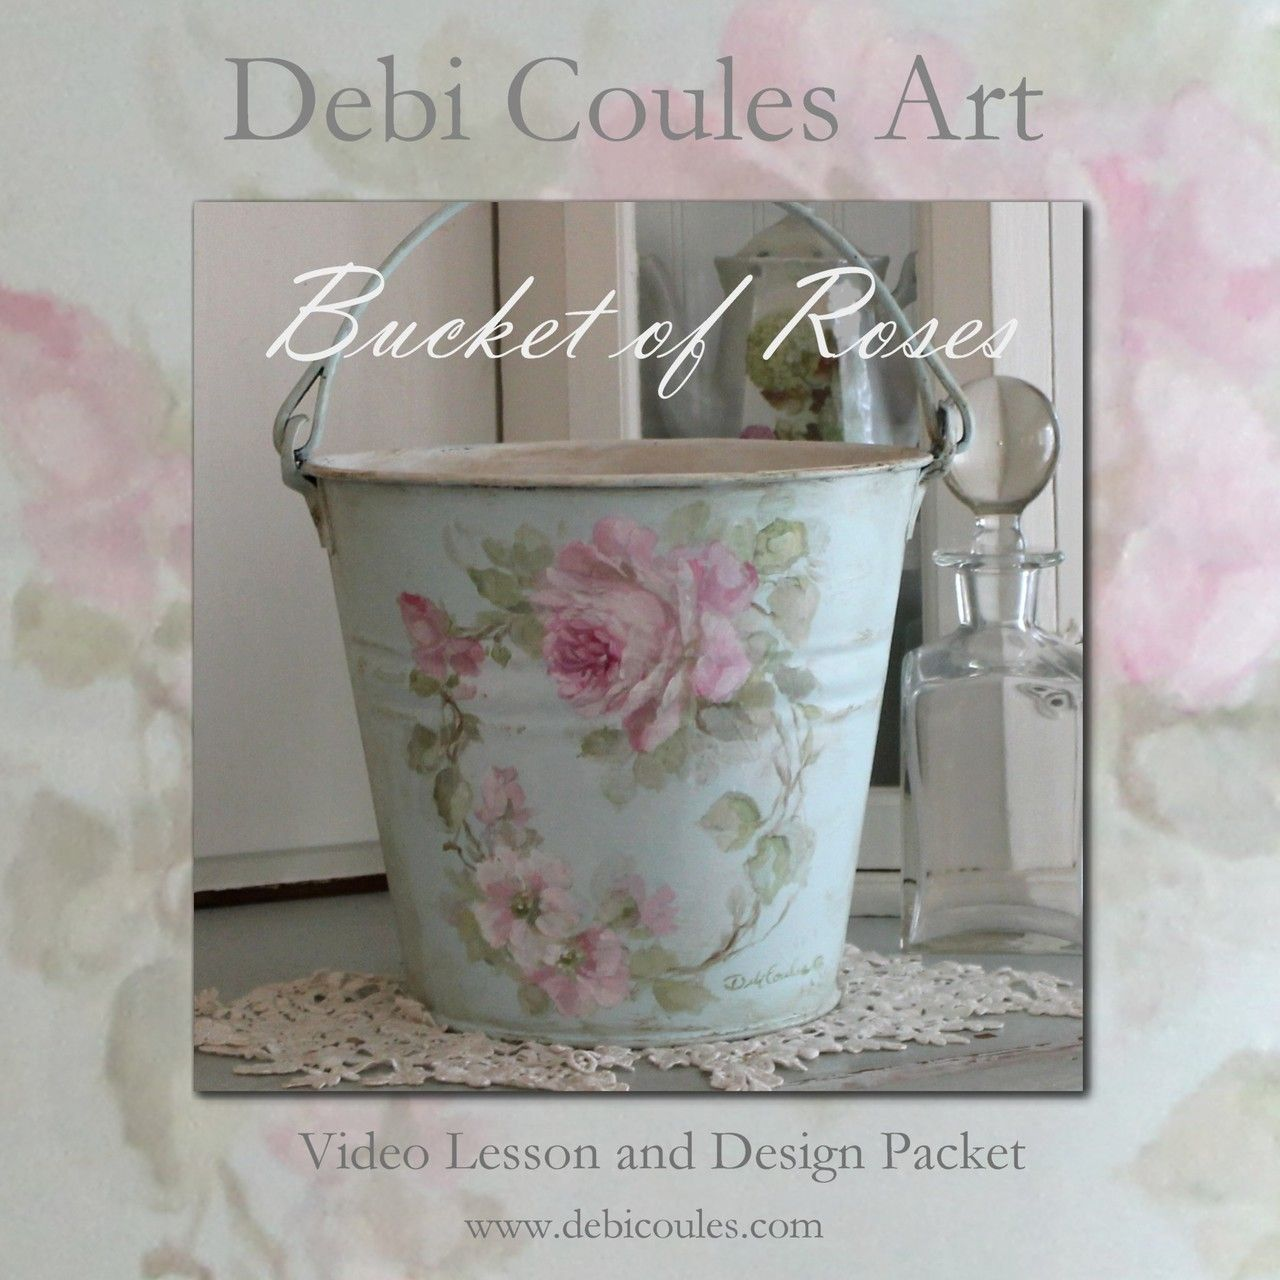 Photo of Bucket of Roses Instructional DVD and Printed Packet by Debi Coules